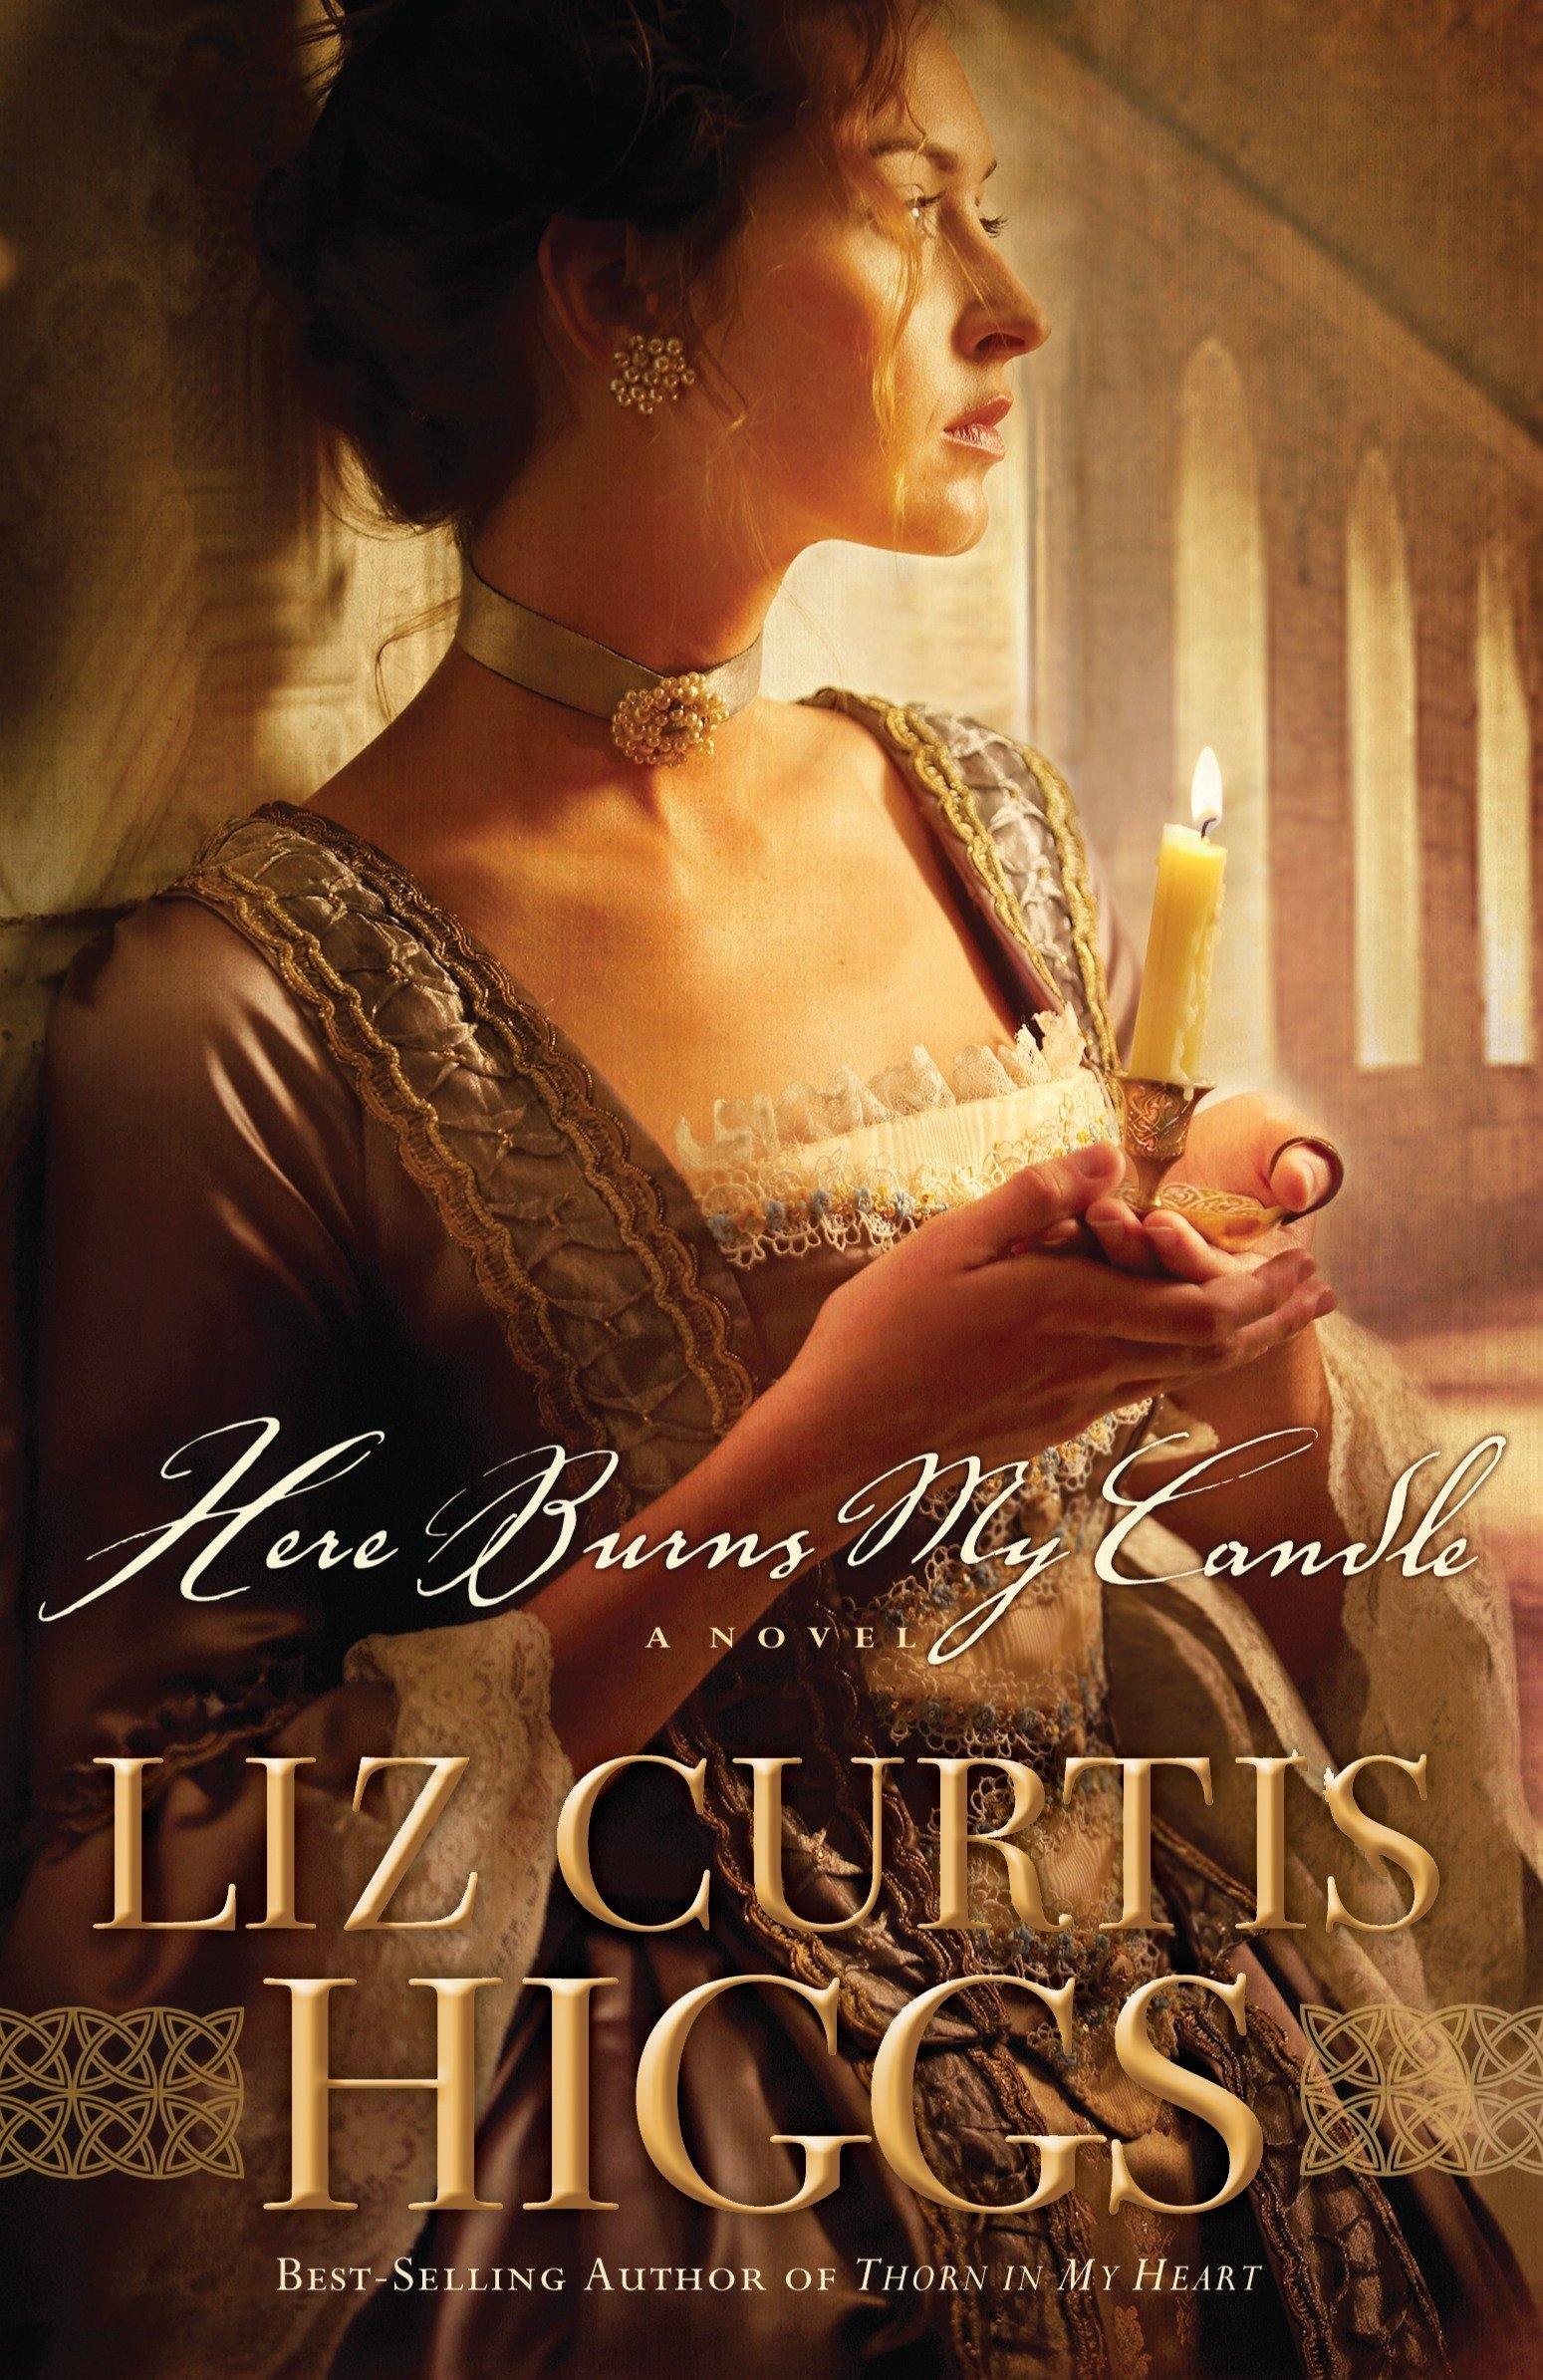 Download Here Burns My Candle: A Novel (Here Burns My Candle Series) PDF